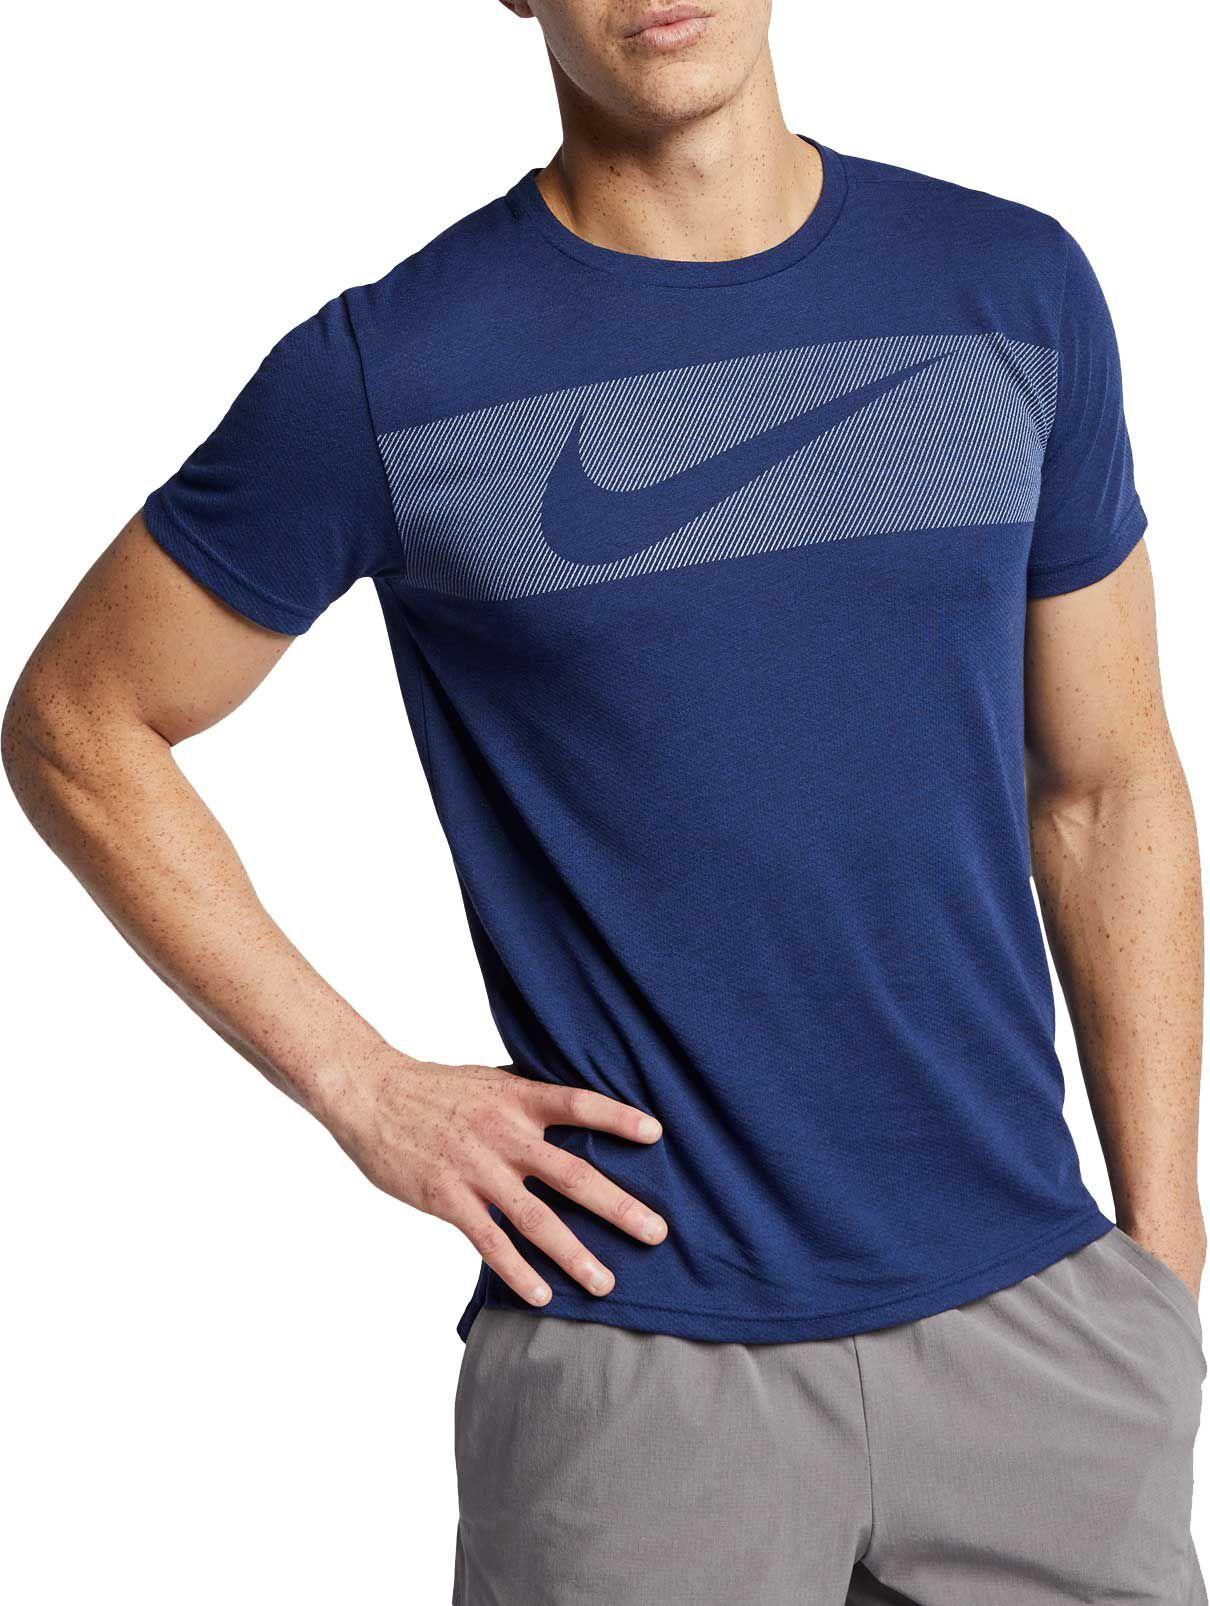 cd296f5c7ee1f Lyst - Nike Hyper Dry Graphic Tee in Blue for Men